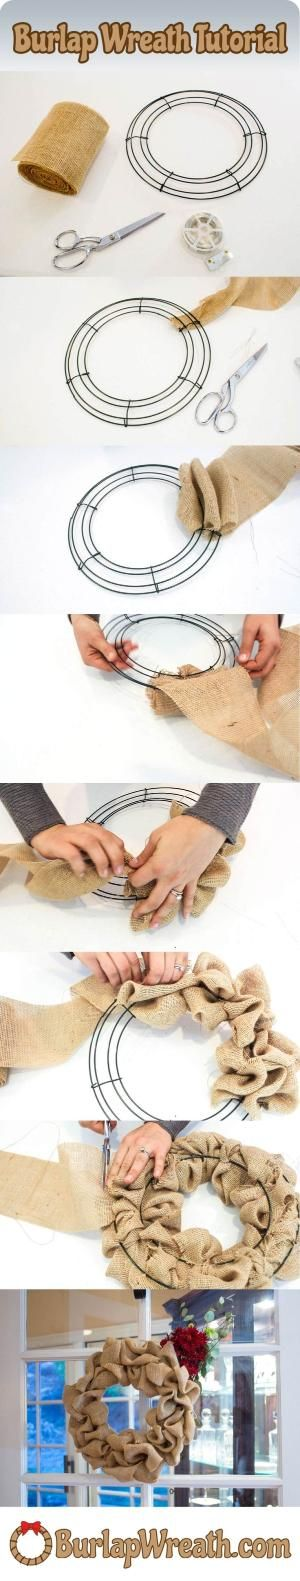 How to make a burlap wreath: Want to make a burlap wreath? Check out this easy to use tutorial showing you how to make a burlap wreath in less than 10 minutes. All you need is a wreath frame, 20-30 feet of burlap ribbon and some wire. DIY burlap wreaths make a great craft project. by dianna.freels